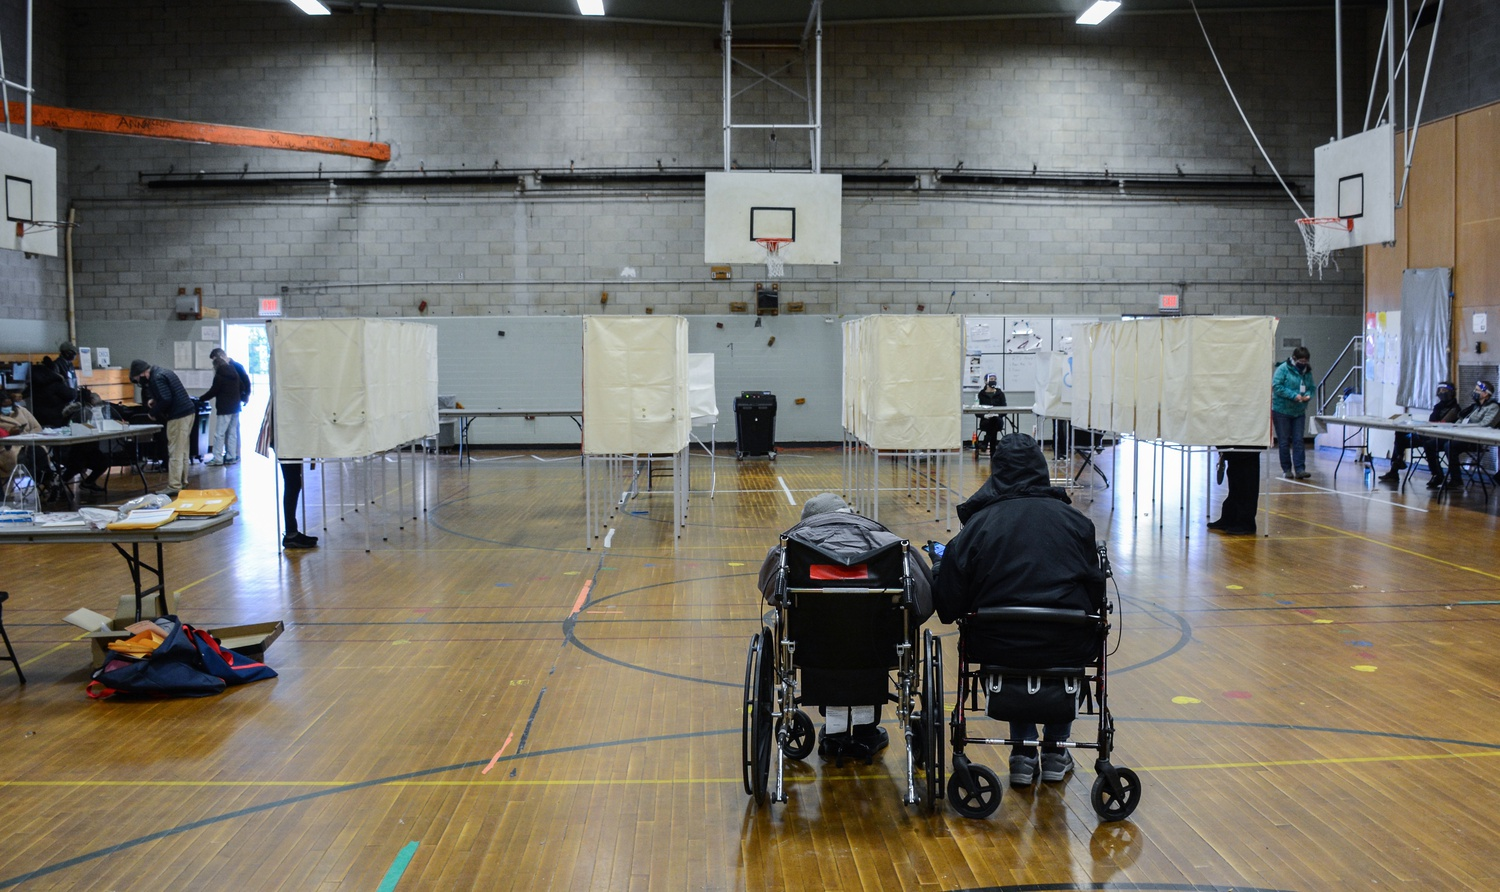 Two voters waiting for transportation back to their homes look on as voters cast their ballots at Graham and Parks School polling center in Cambridge, Mass. on Tuesday.